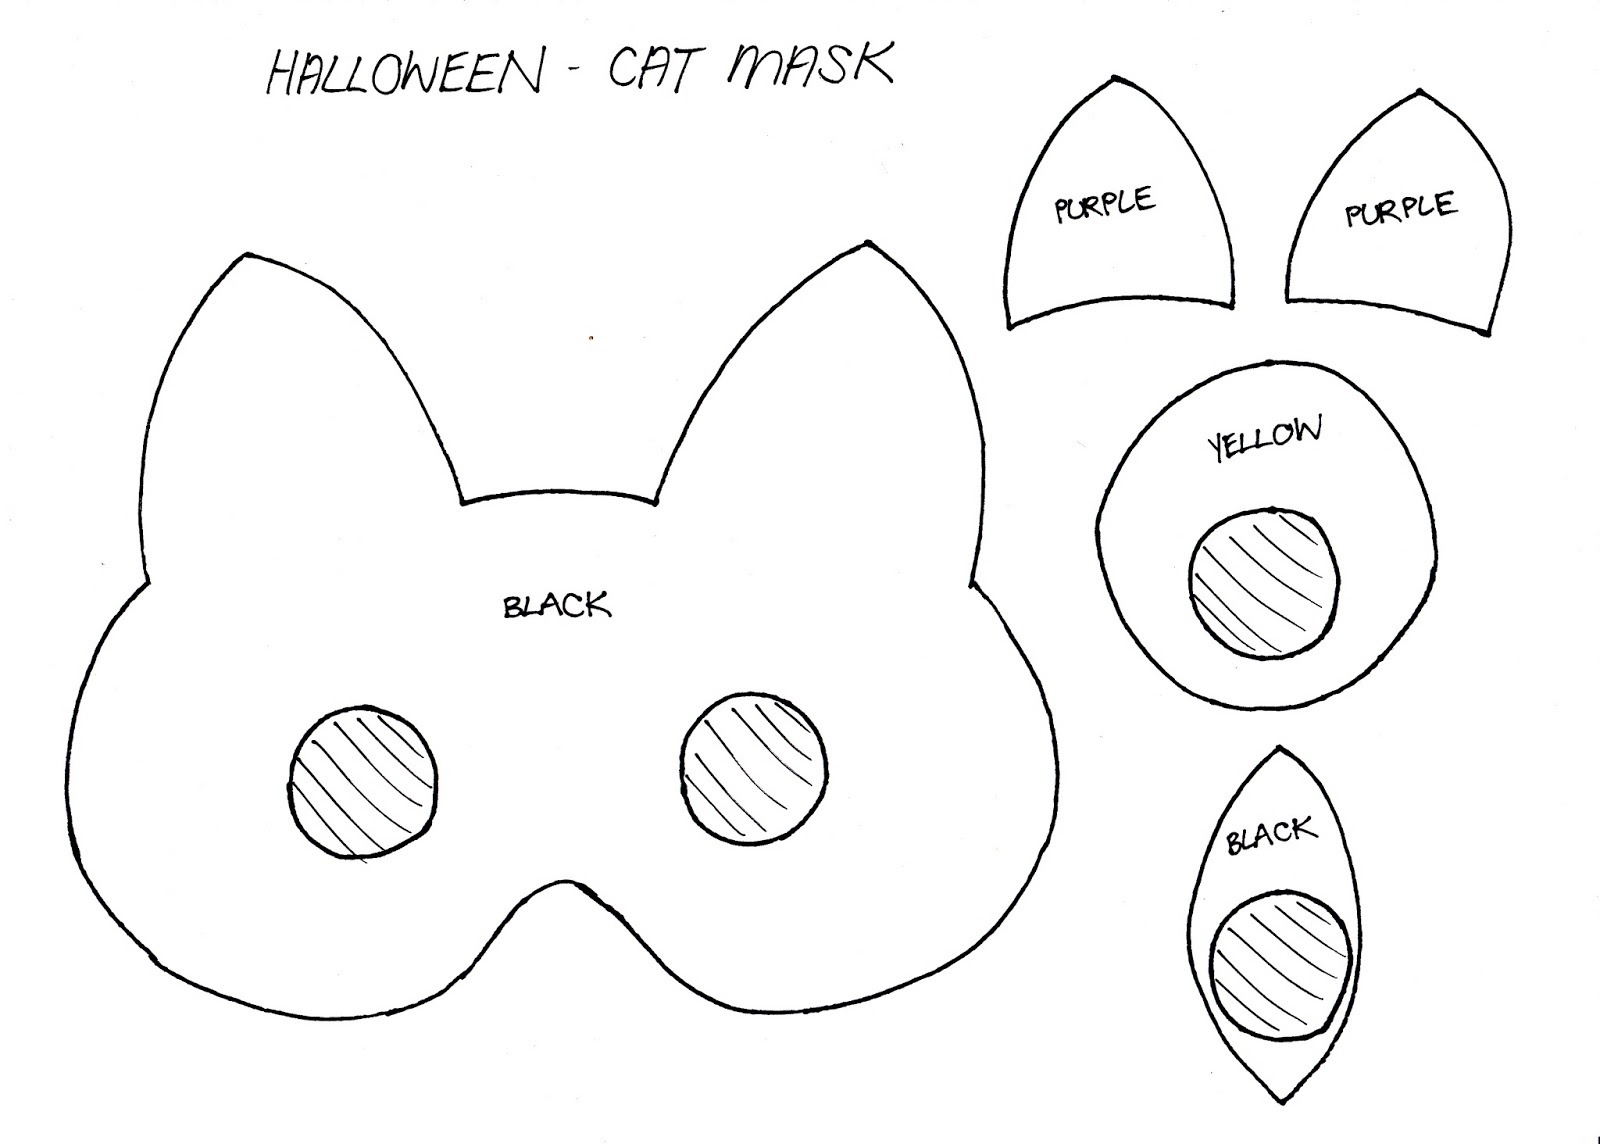 Cat Mask Template Images - Reverse Search